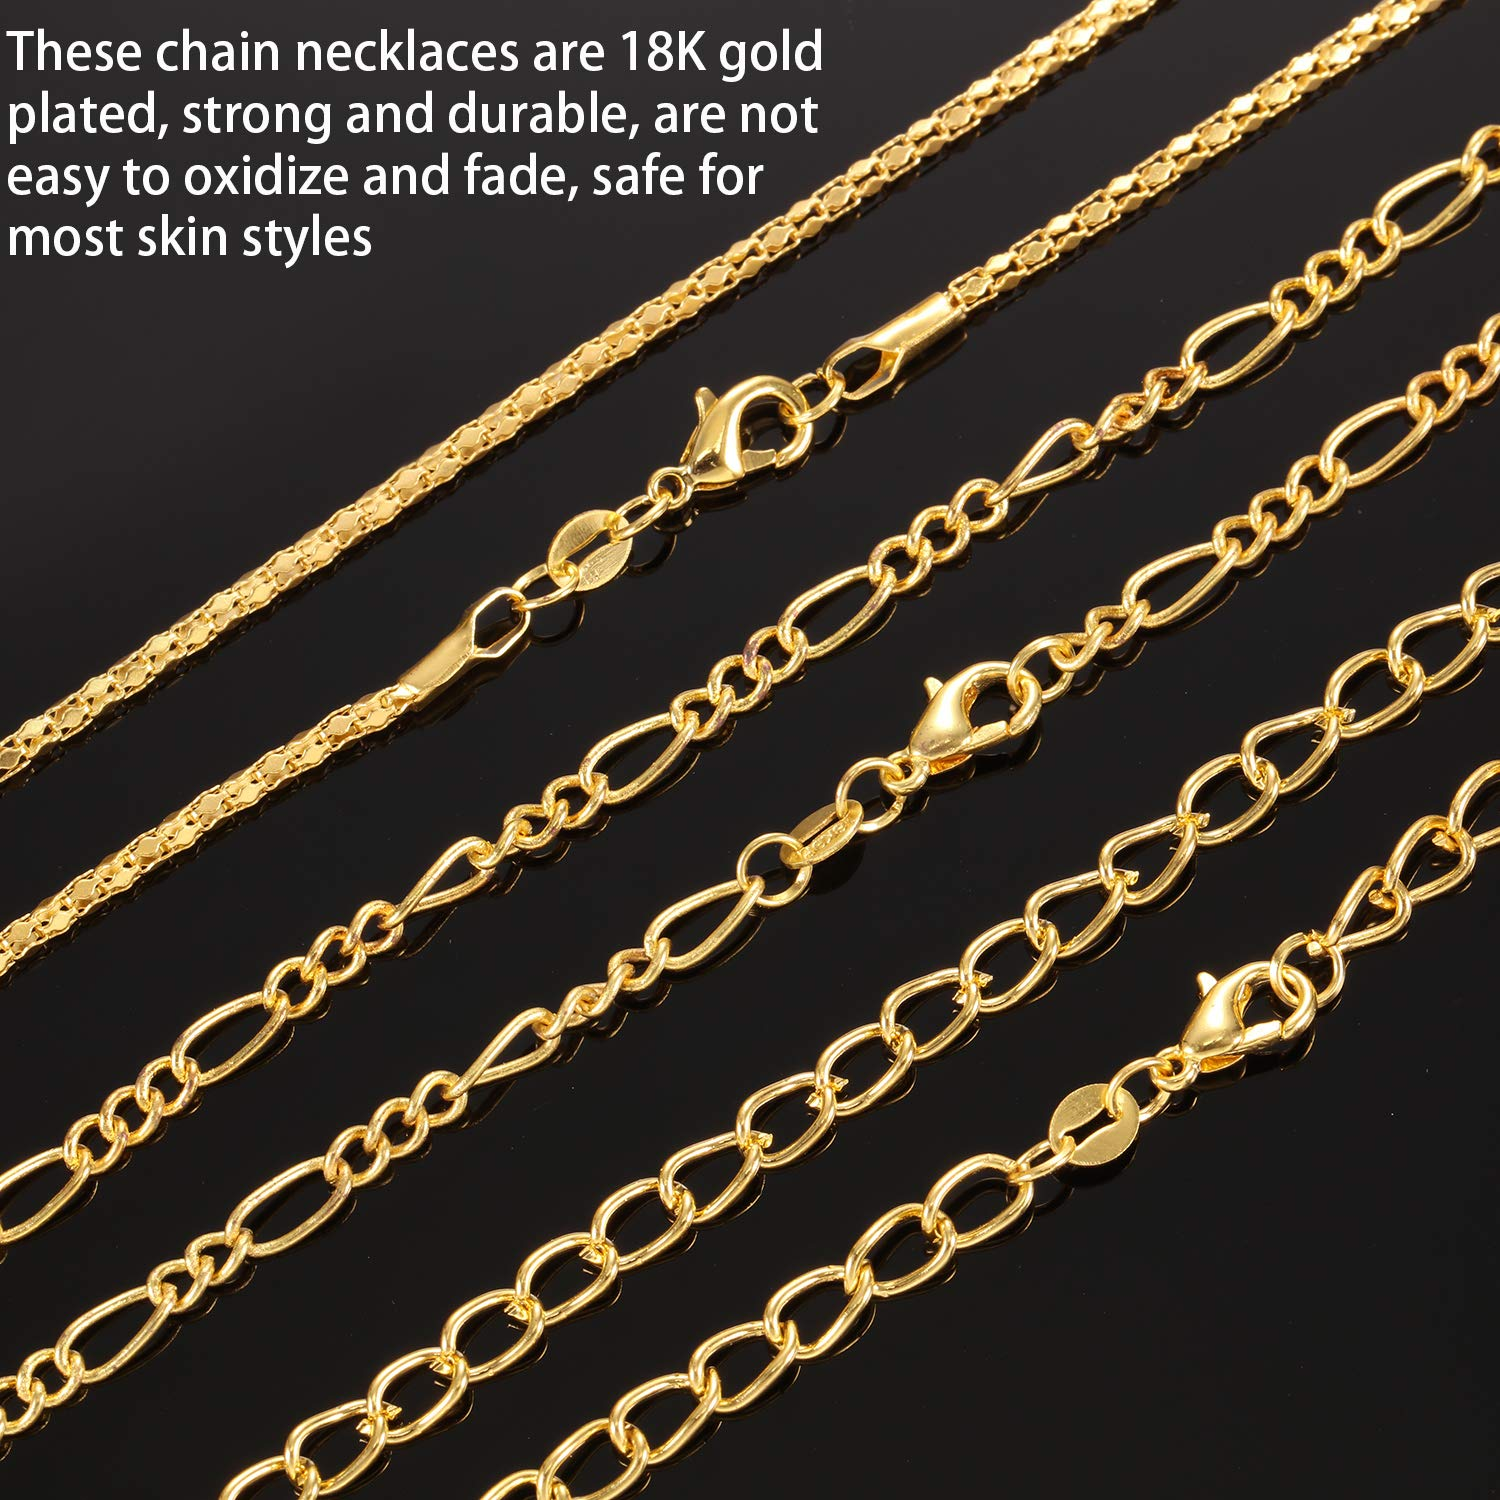 24 Pieces Different Styles Silver or Gold Plated DIY Chain Necklace for Jewelry Making Supplies and Craft 24 Inch, Silver